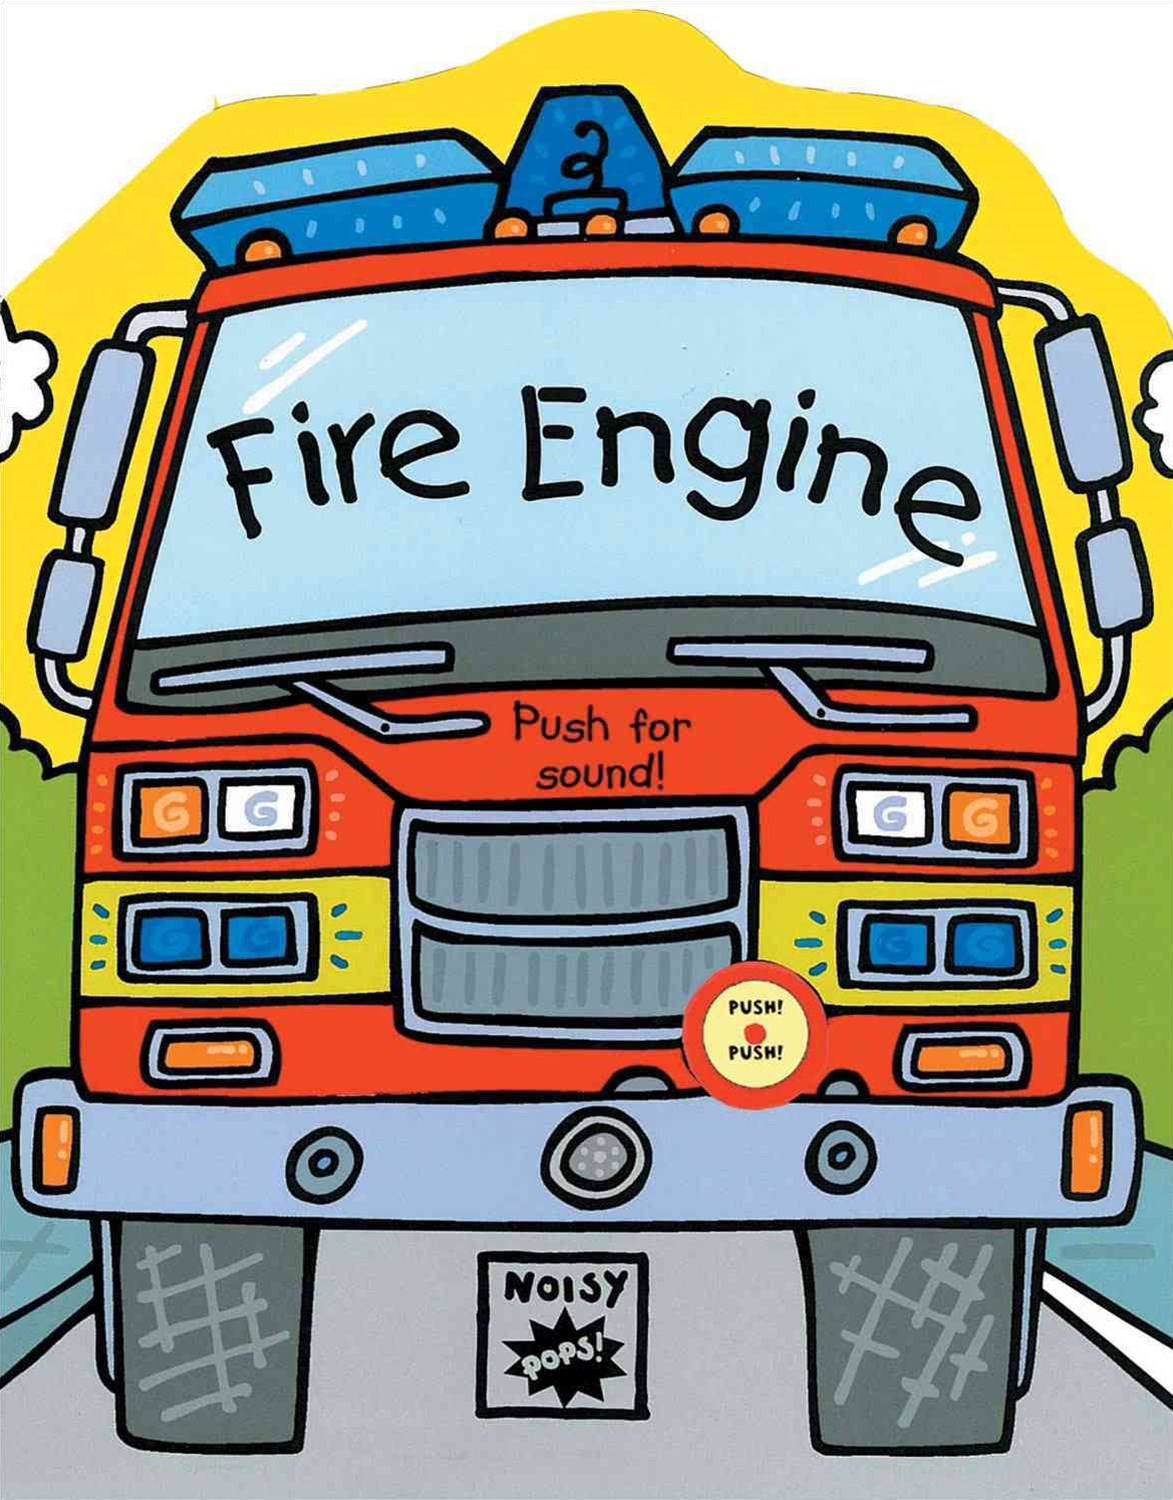 Noisy Pops - Fire Engine